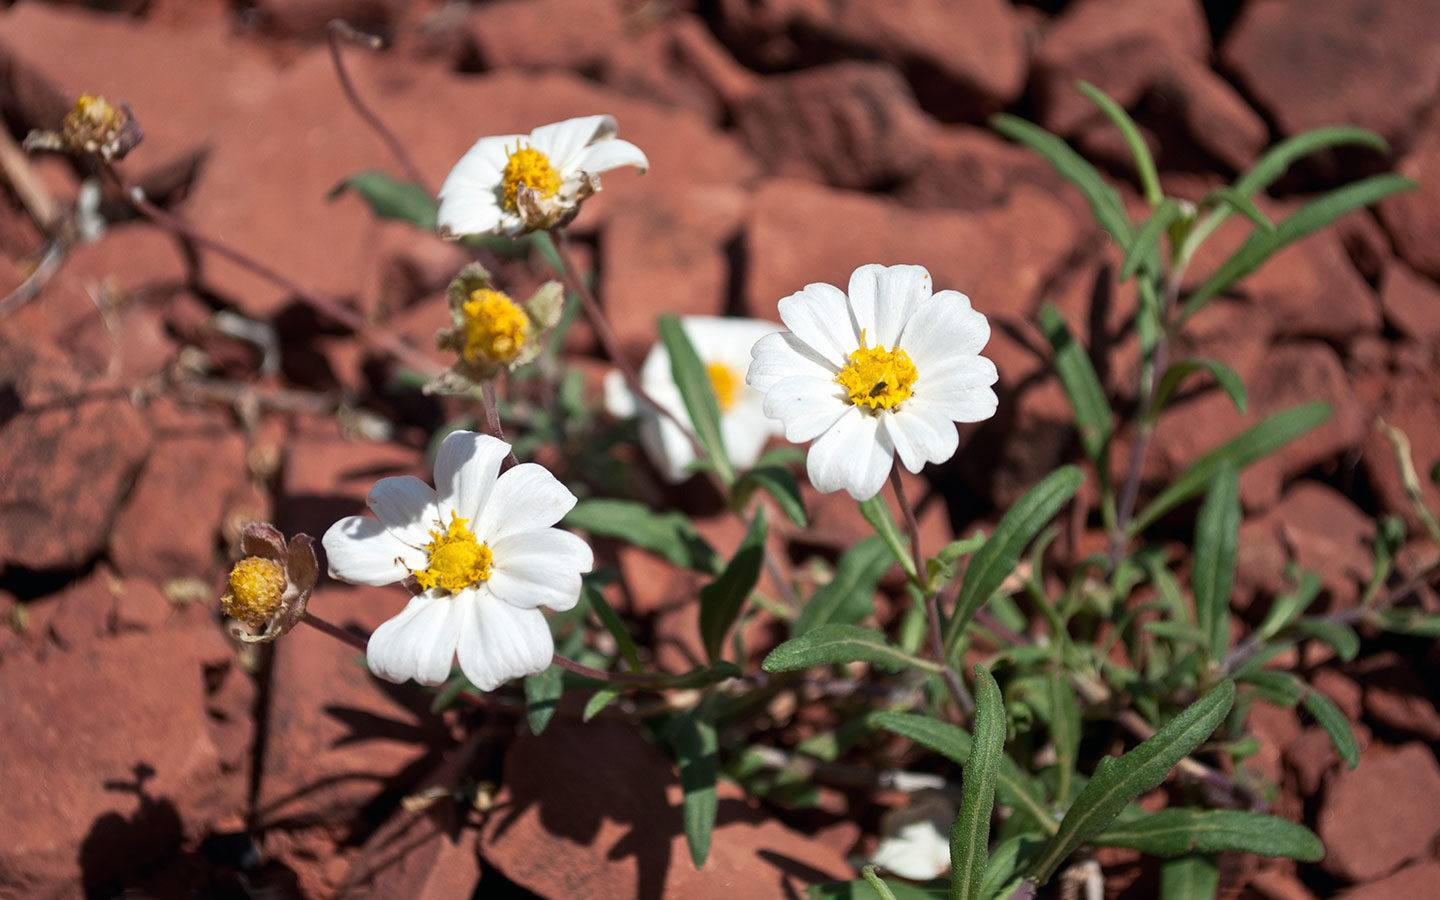 Red rocks and white flowers in Arizona, southwest USA